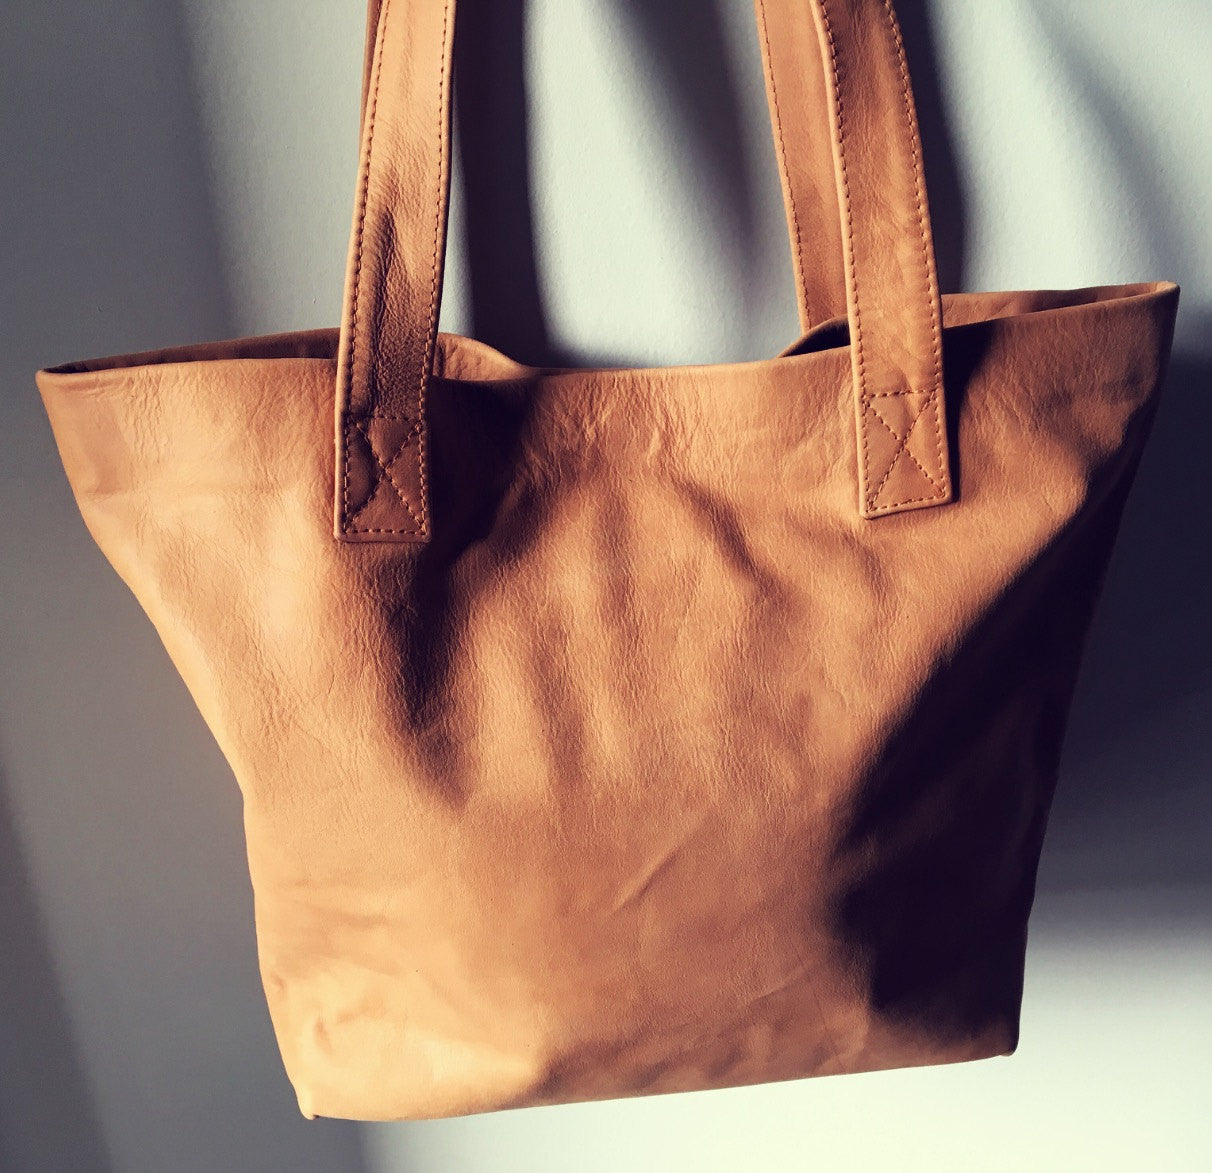 e41ceab72a63 The Angle Tote - Brown classic shoulder tote handbag.Handmade leather tote